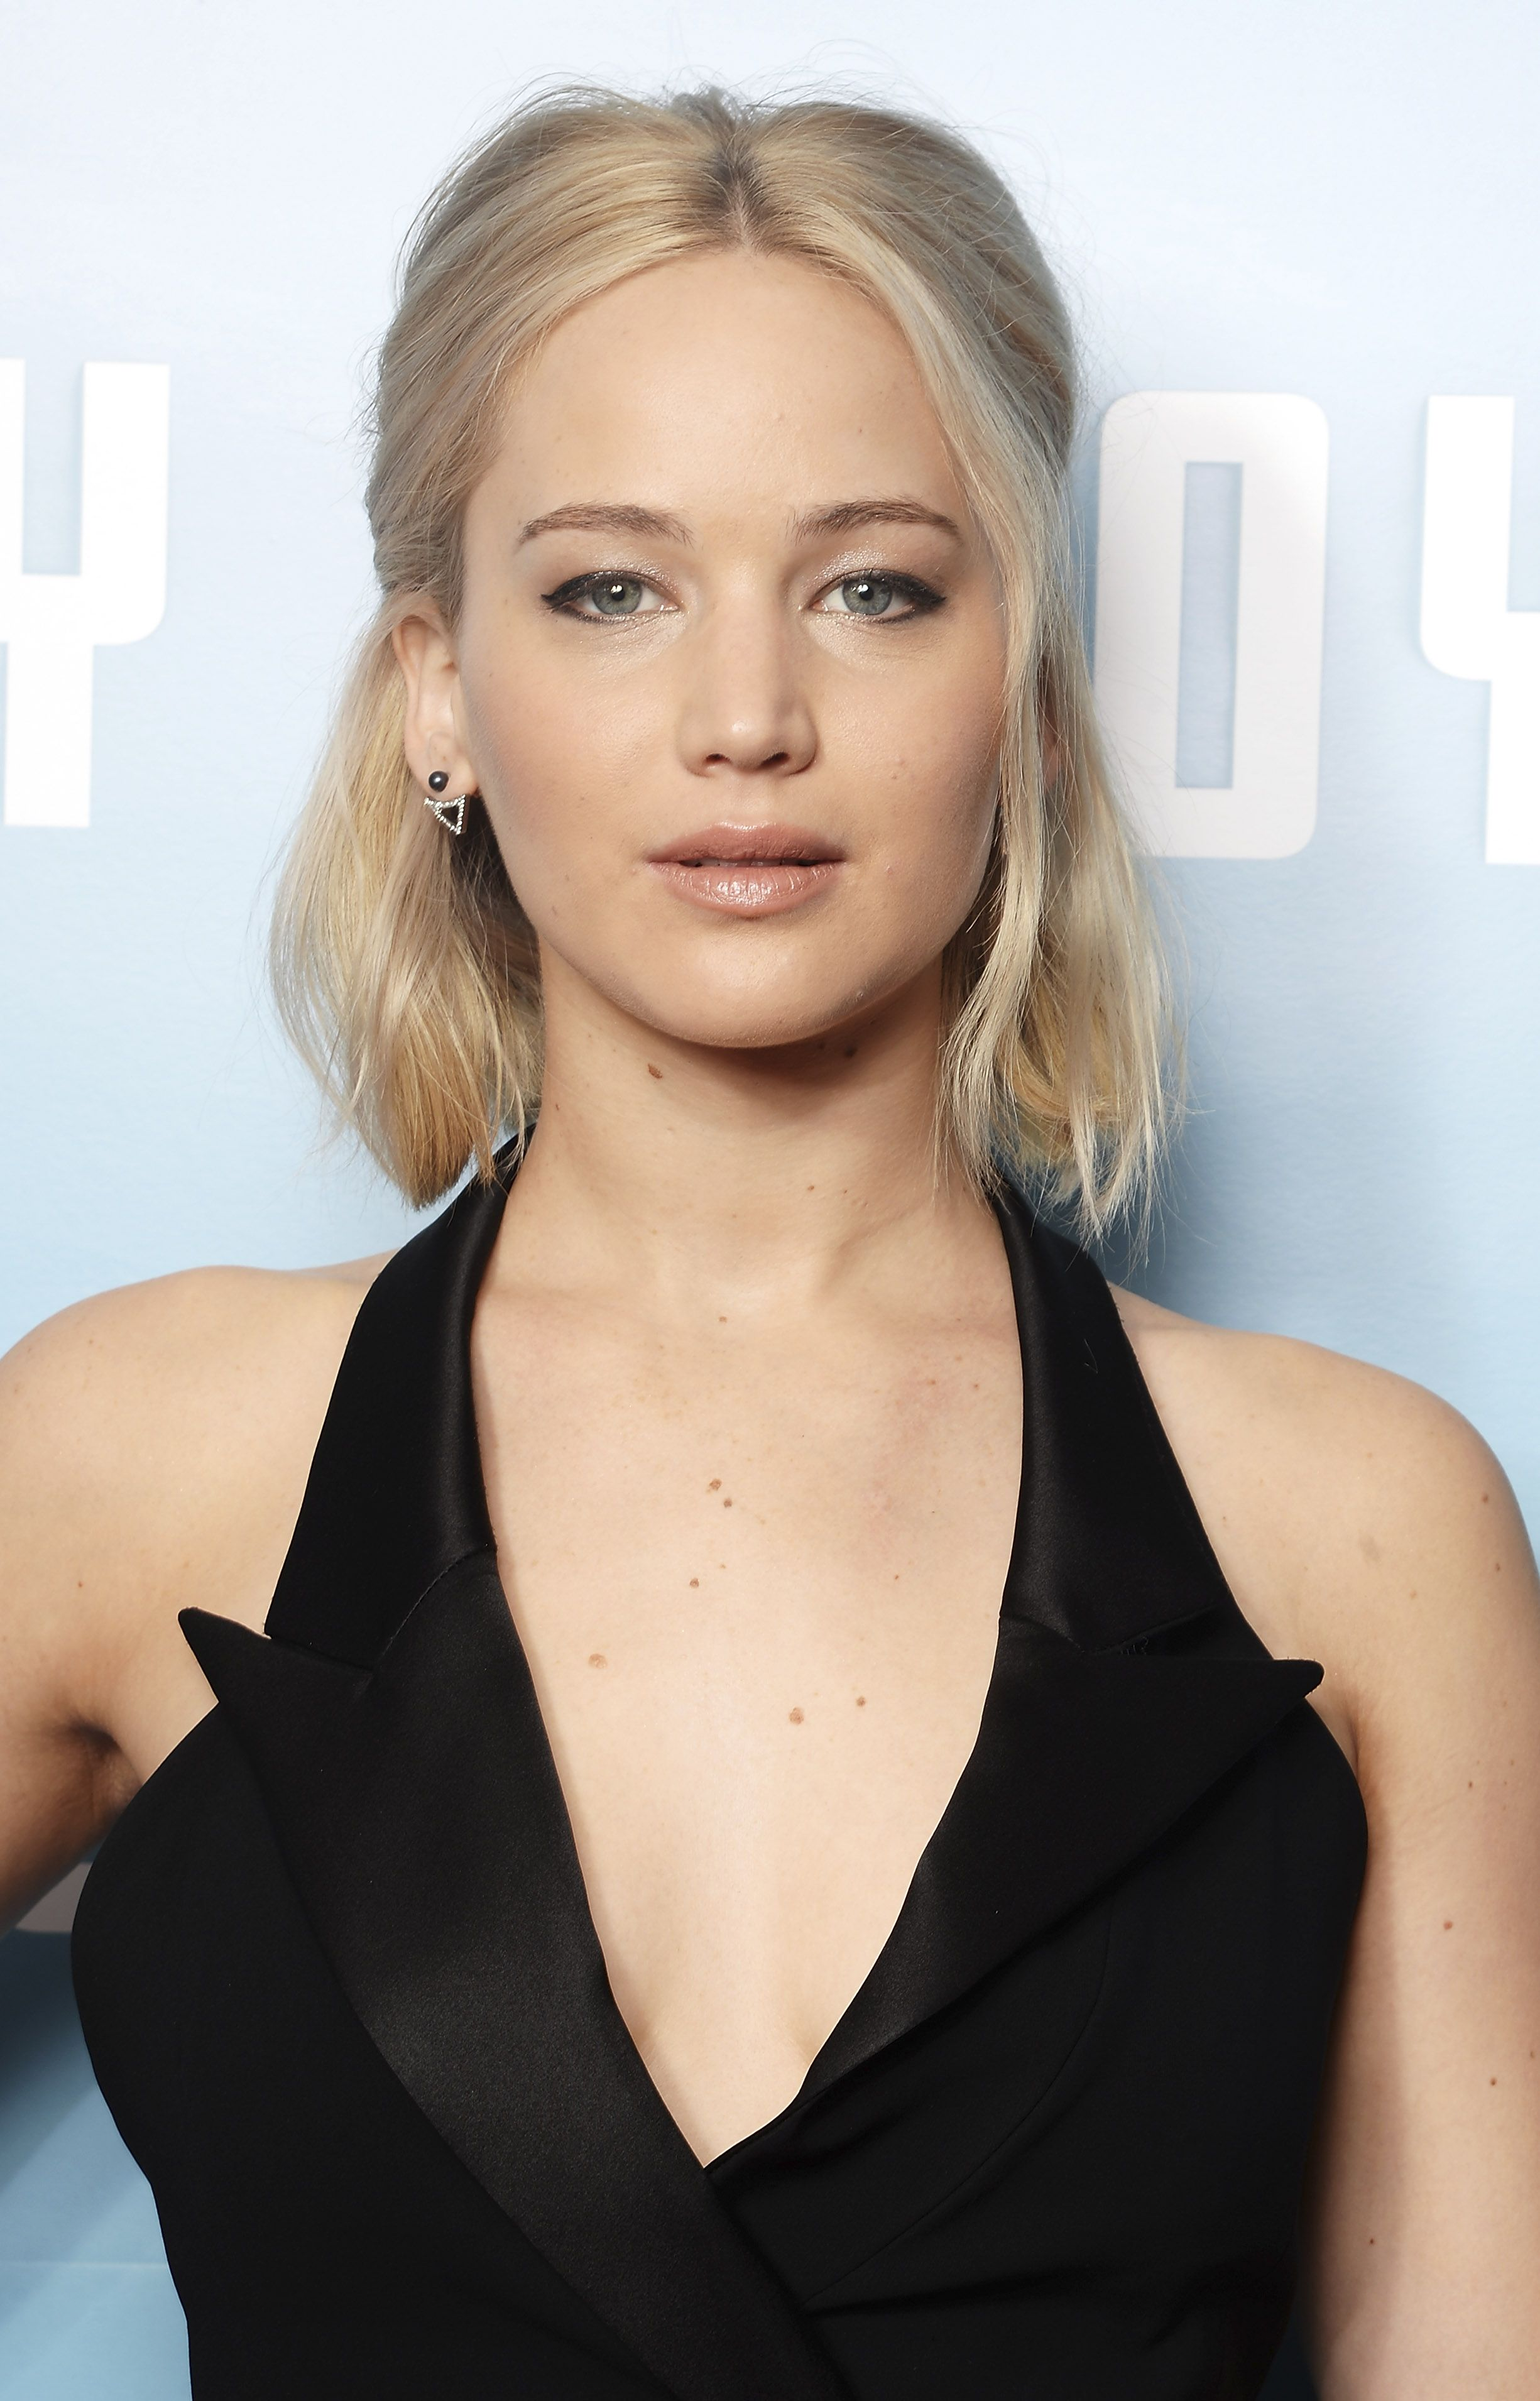 From J Law to Rihanna 10 Mind Blowing Celeb Hair Transformations